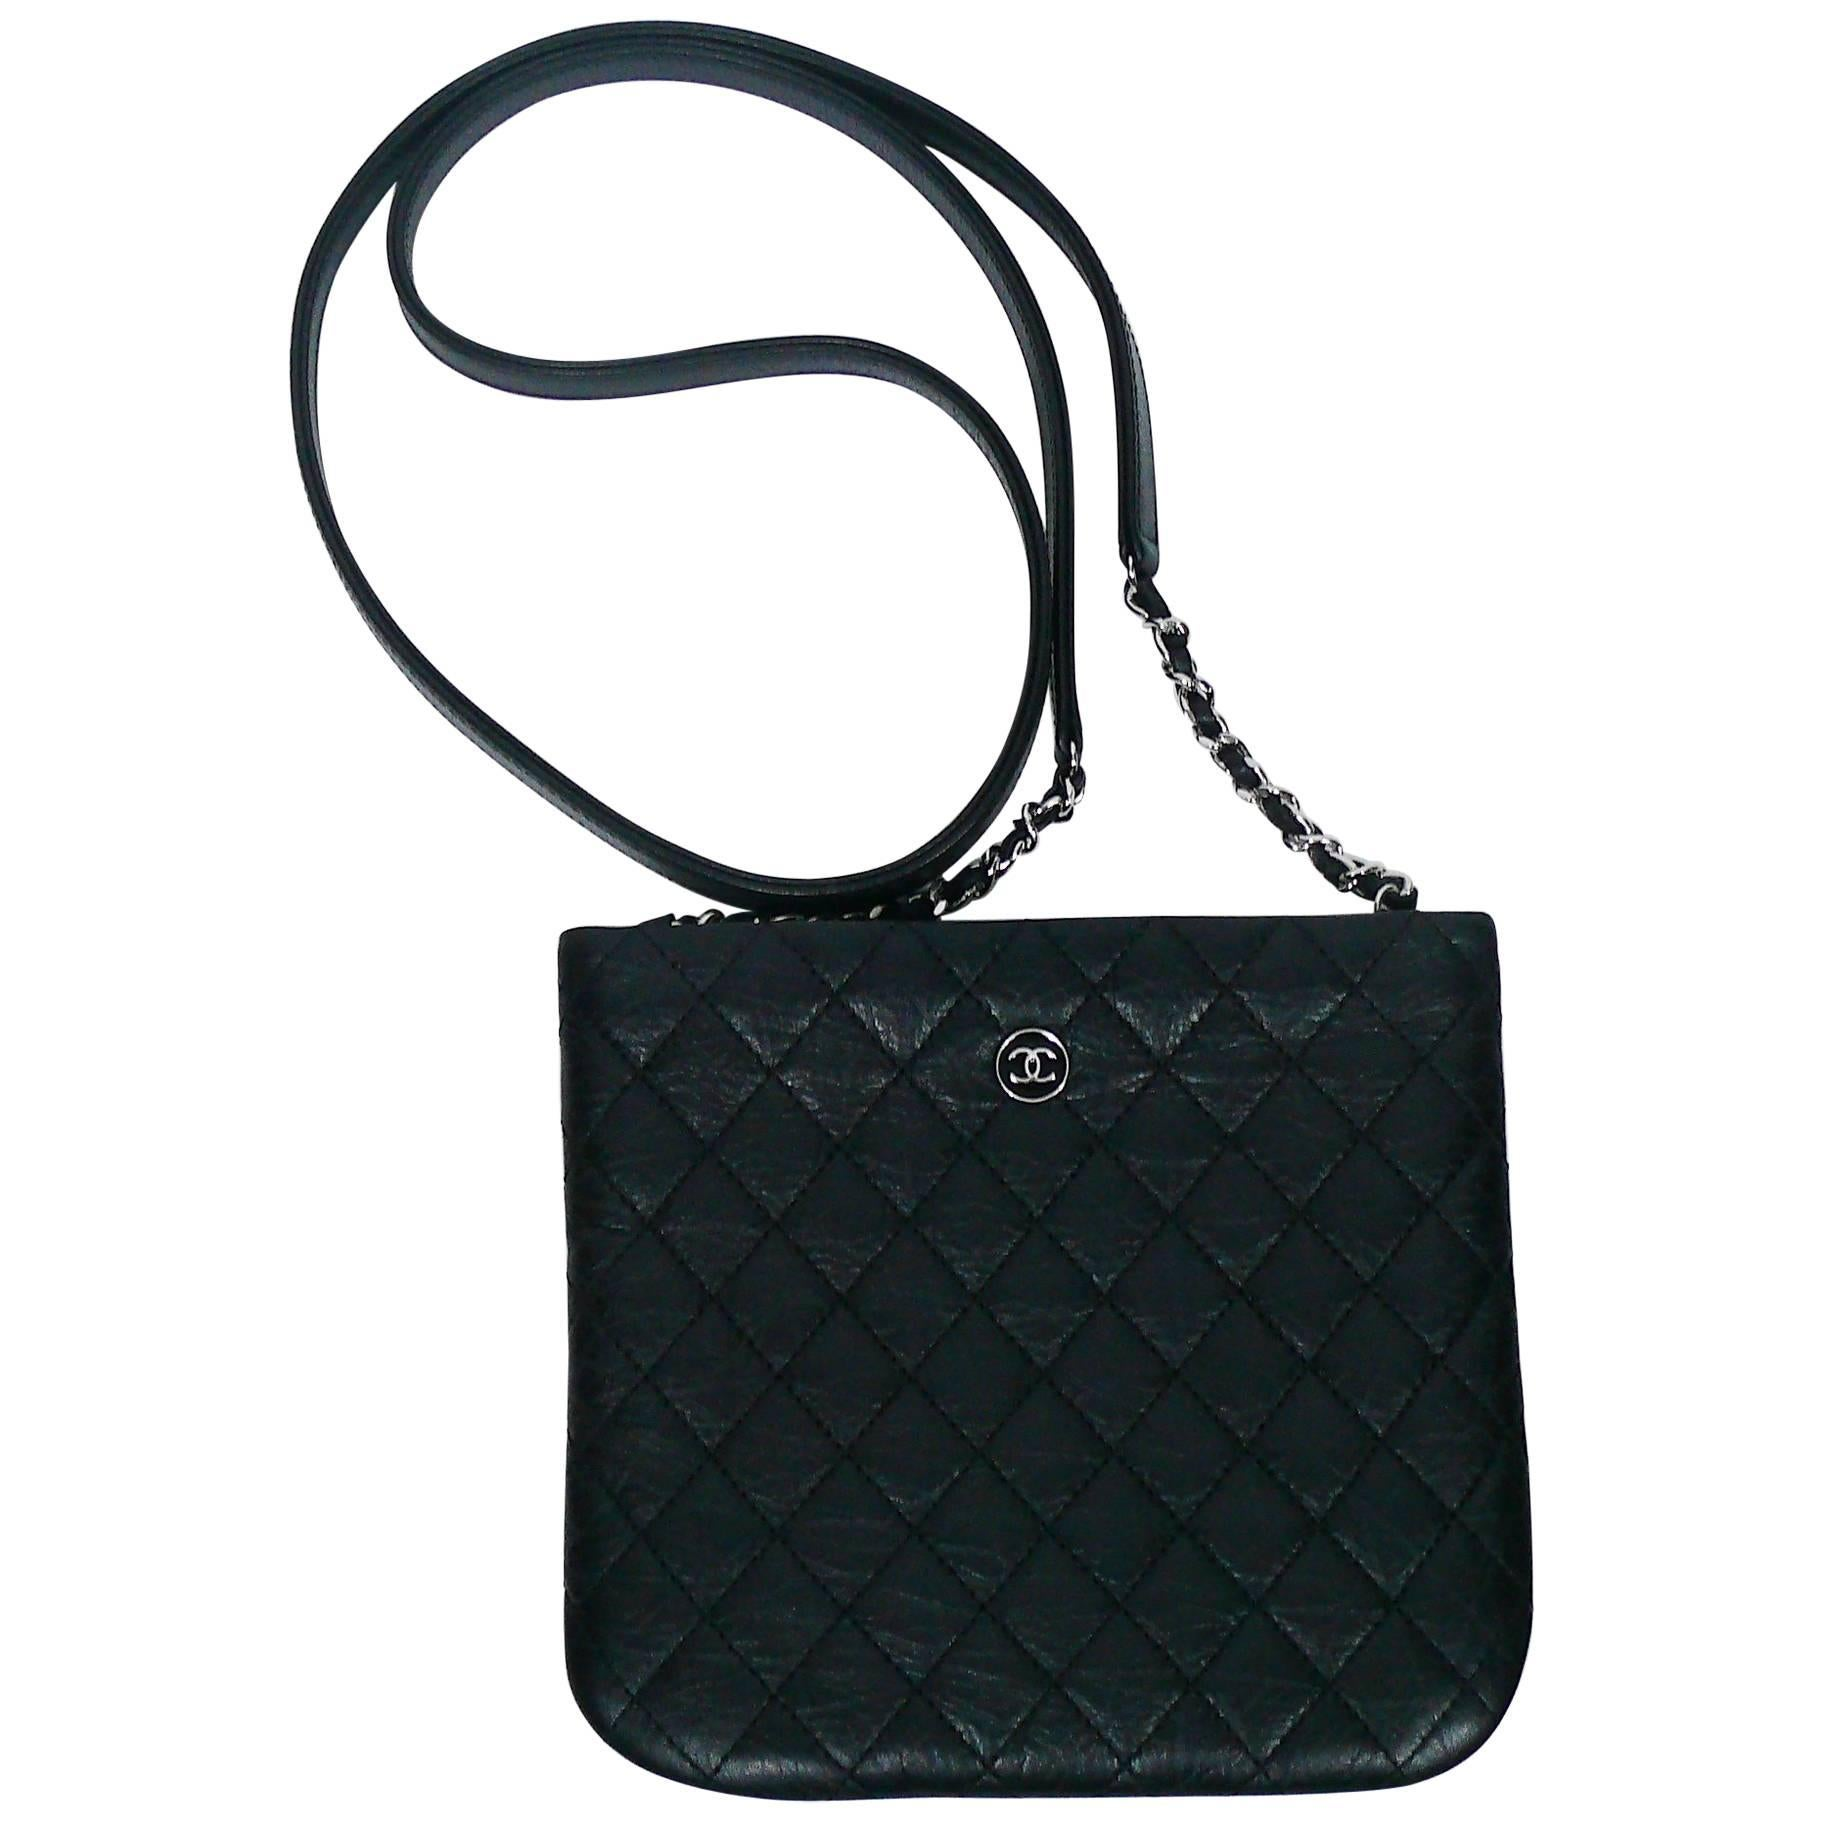 6685c3fba0f Chanel Quilted Black Leather Employee Uniform Crossbody Bag at 1stdibs